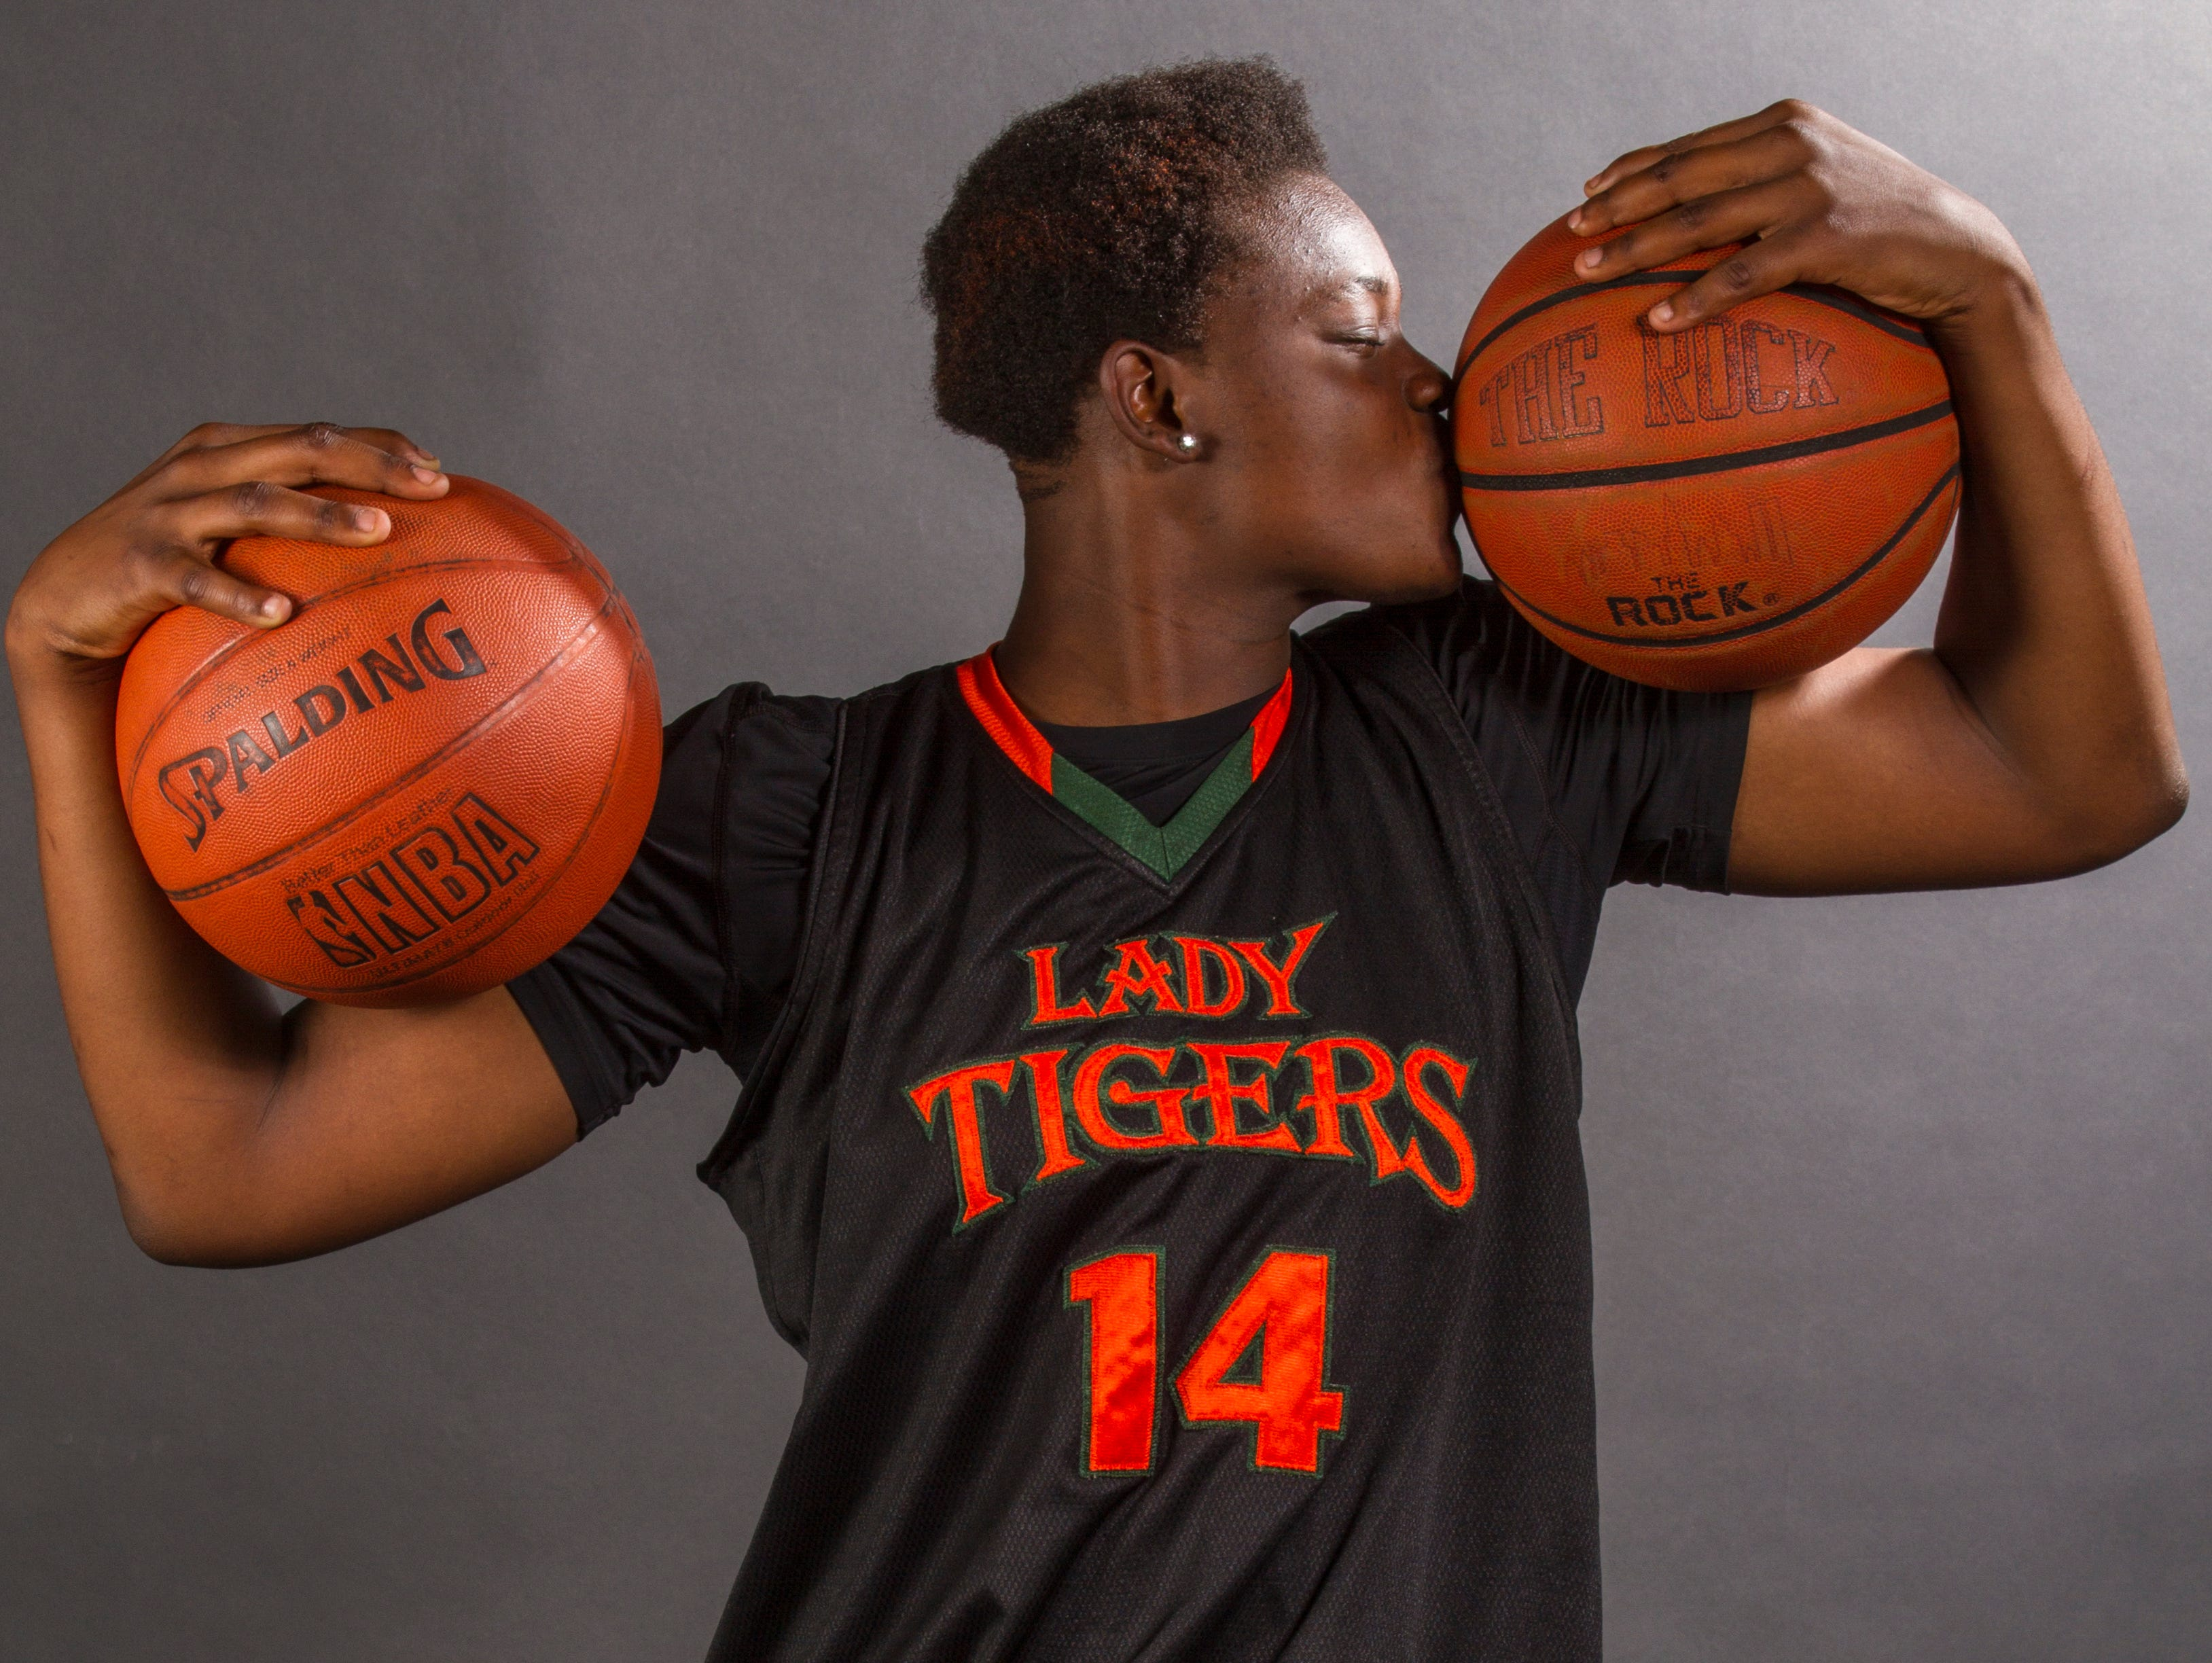 Ja'Miah Bland, 15, is a sophomore basketball player at Dunbar High School.